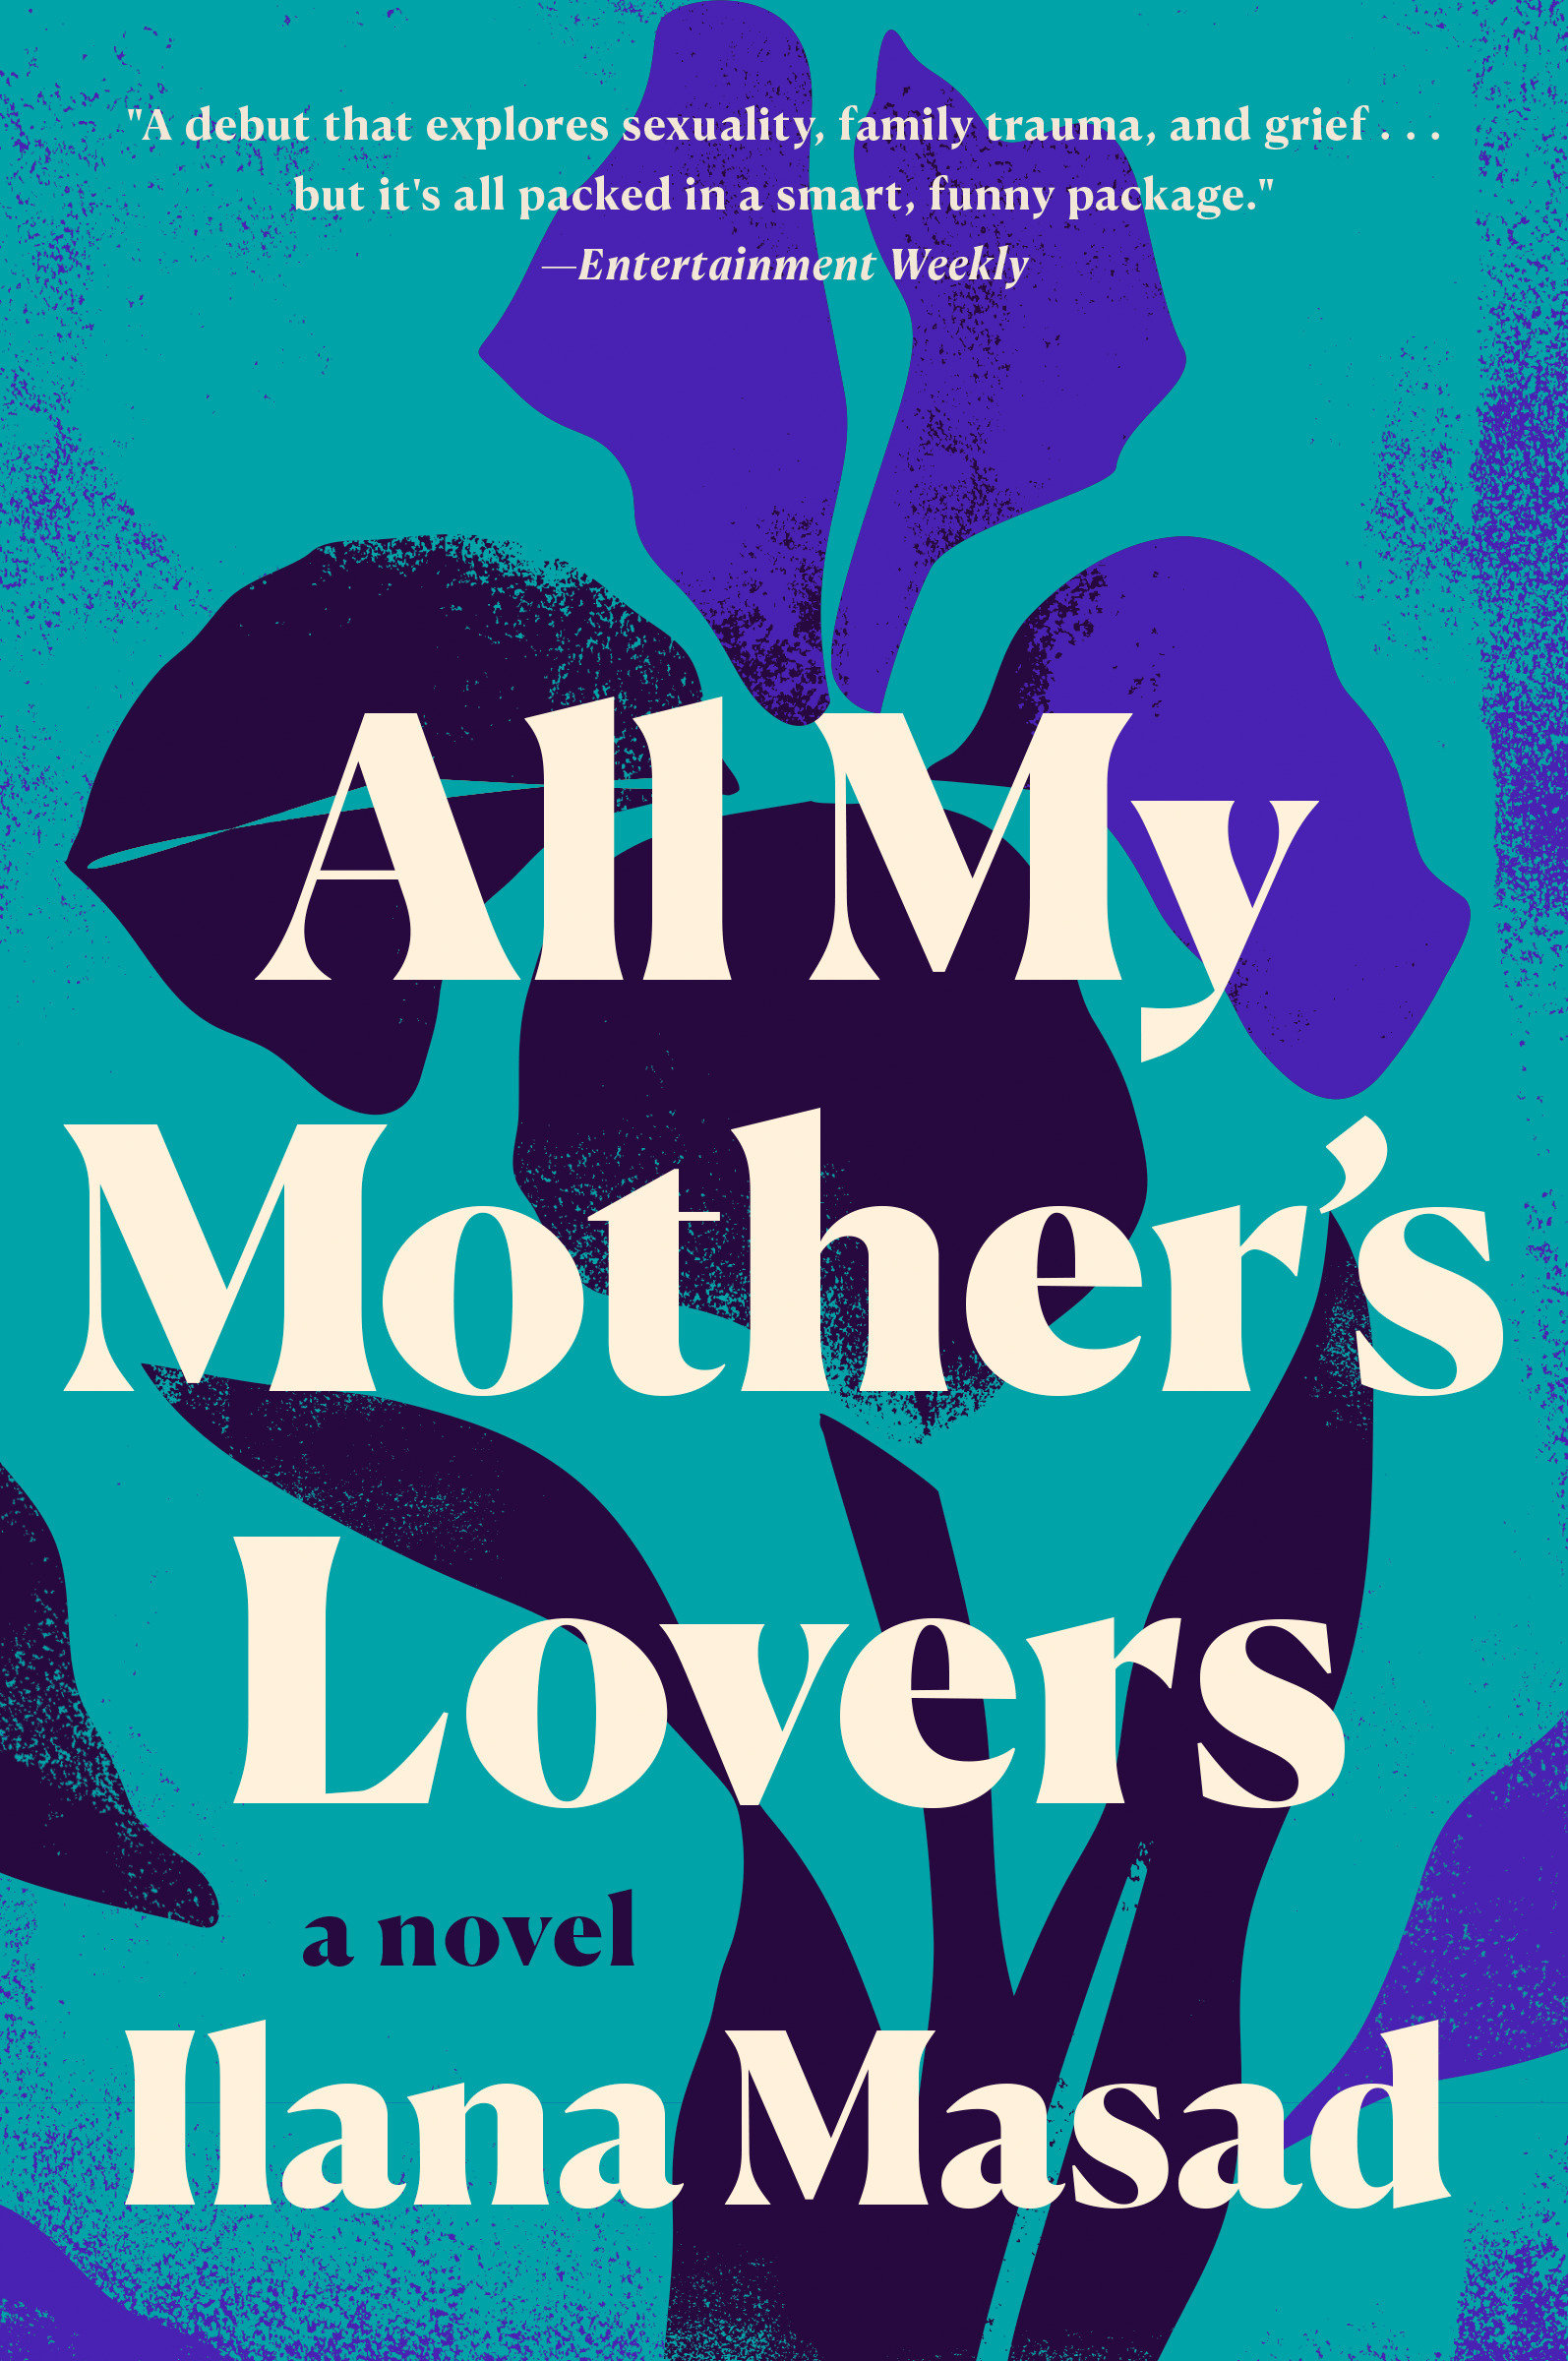 All My Mother's Lovers [electronic resource (downloadable eBook)] : a novel